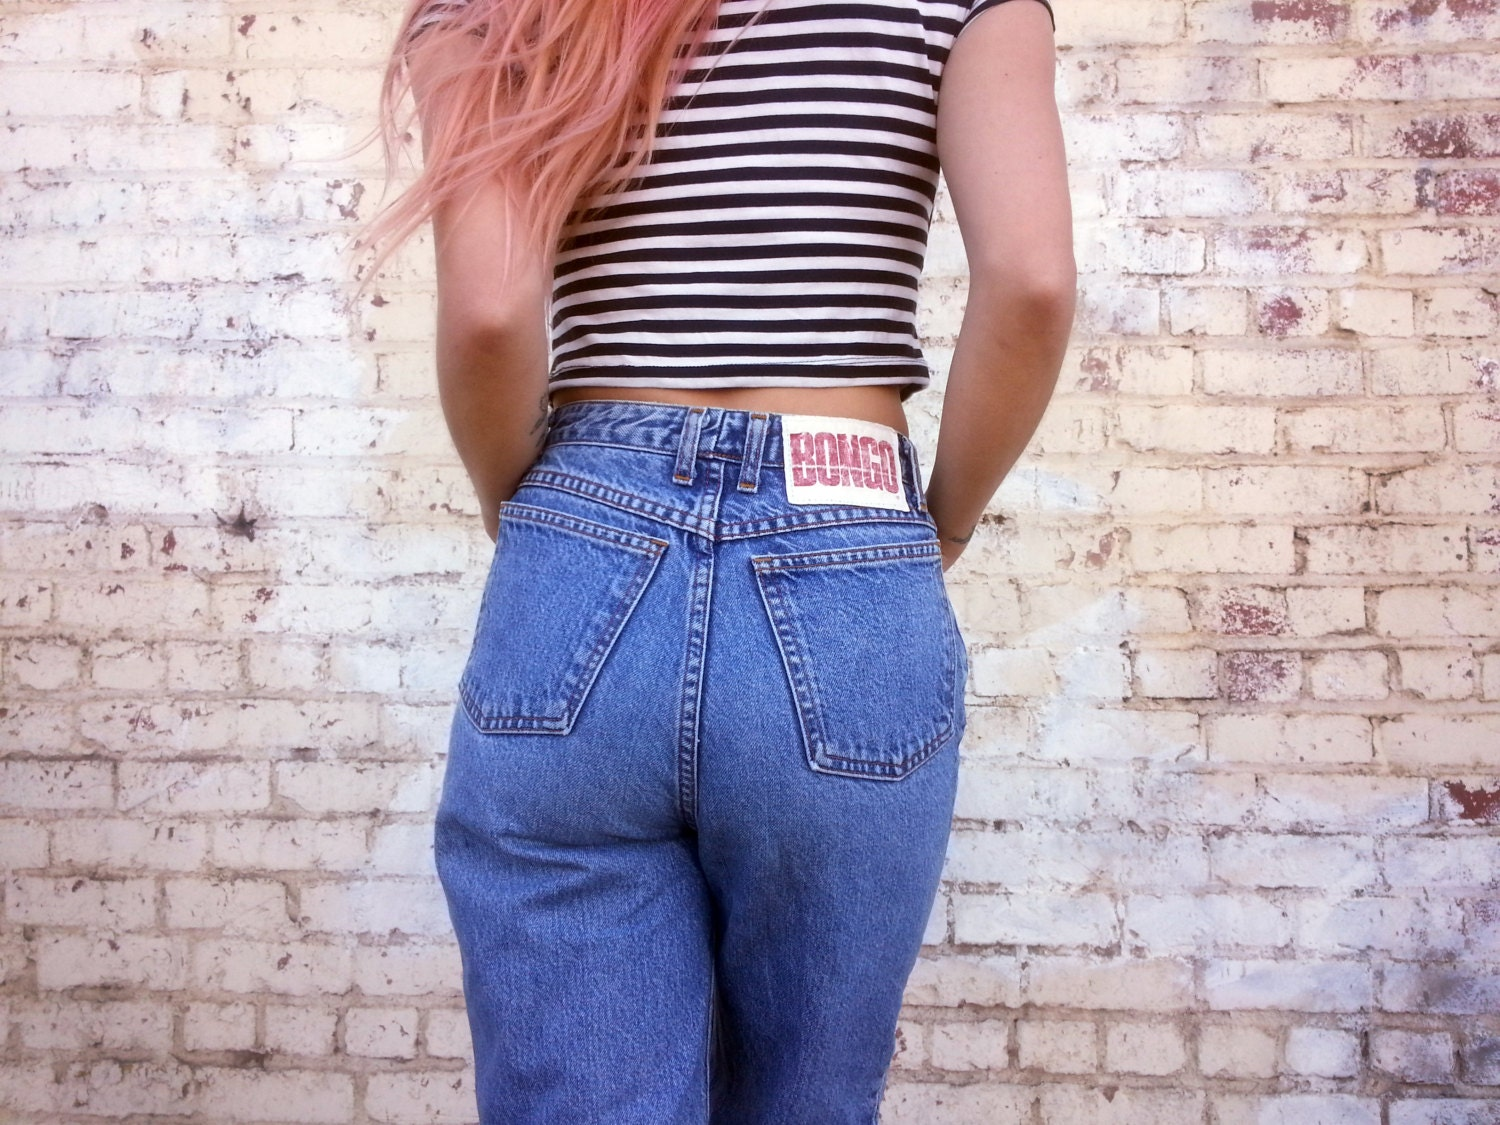 Old High Waisted Jeans - Jeans Am